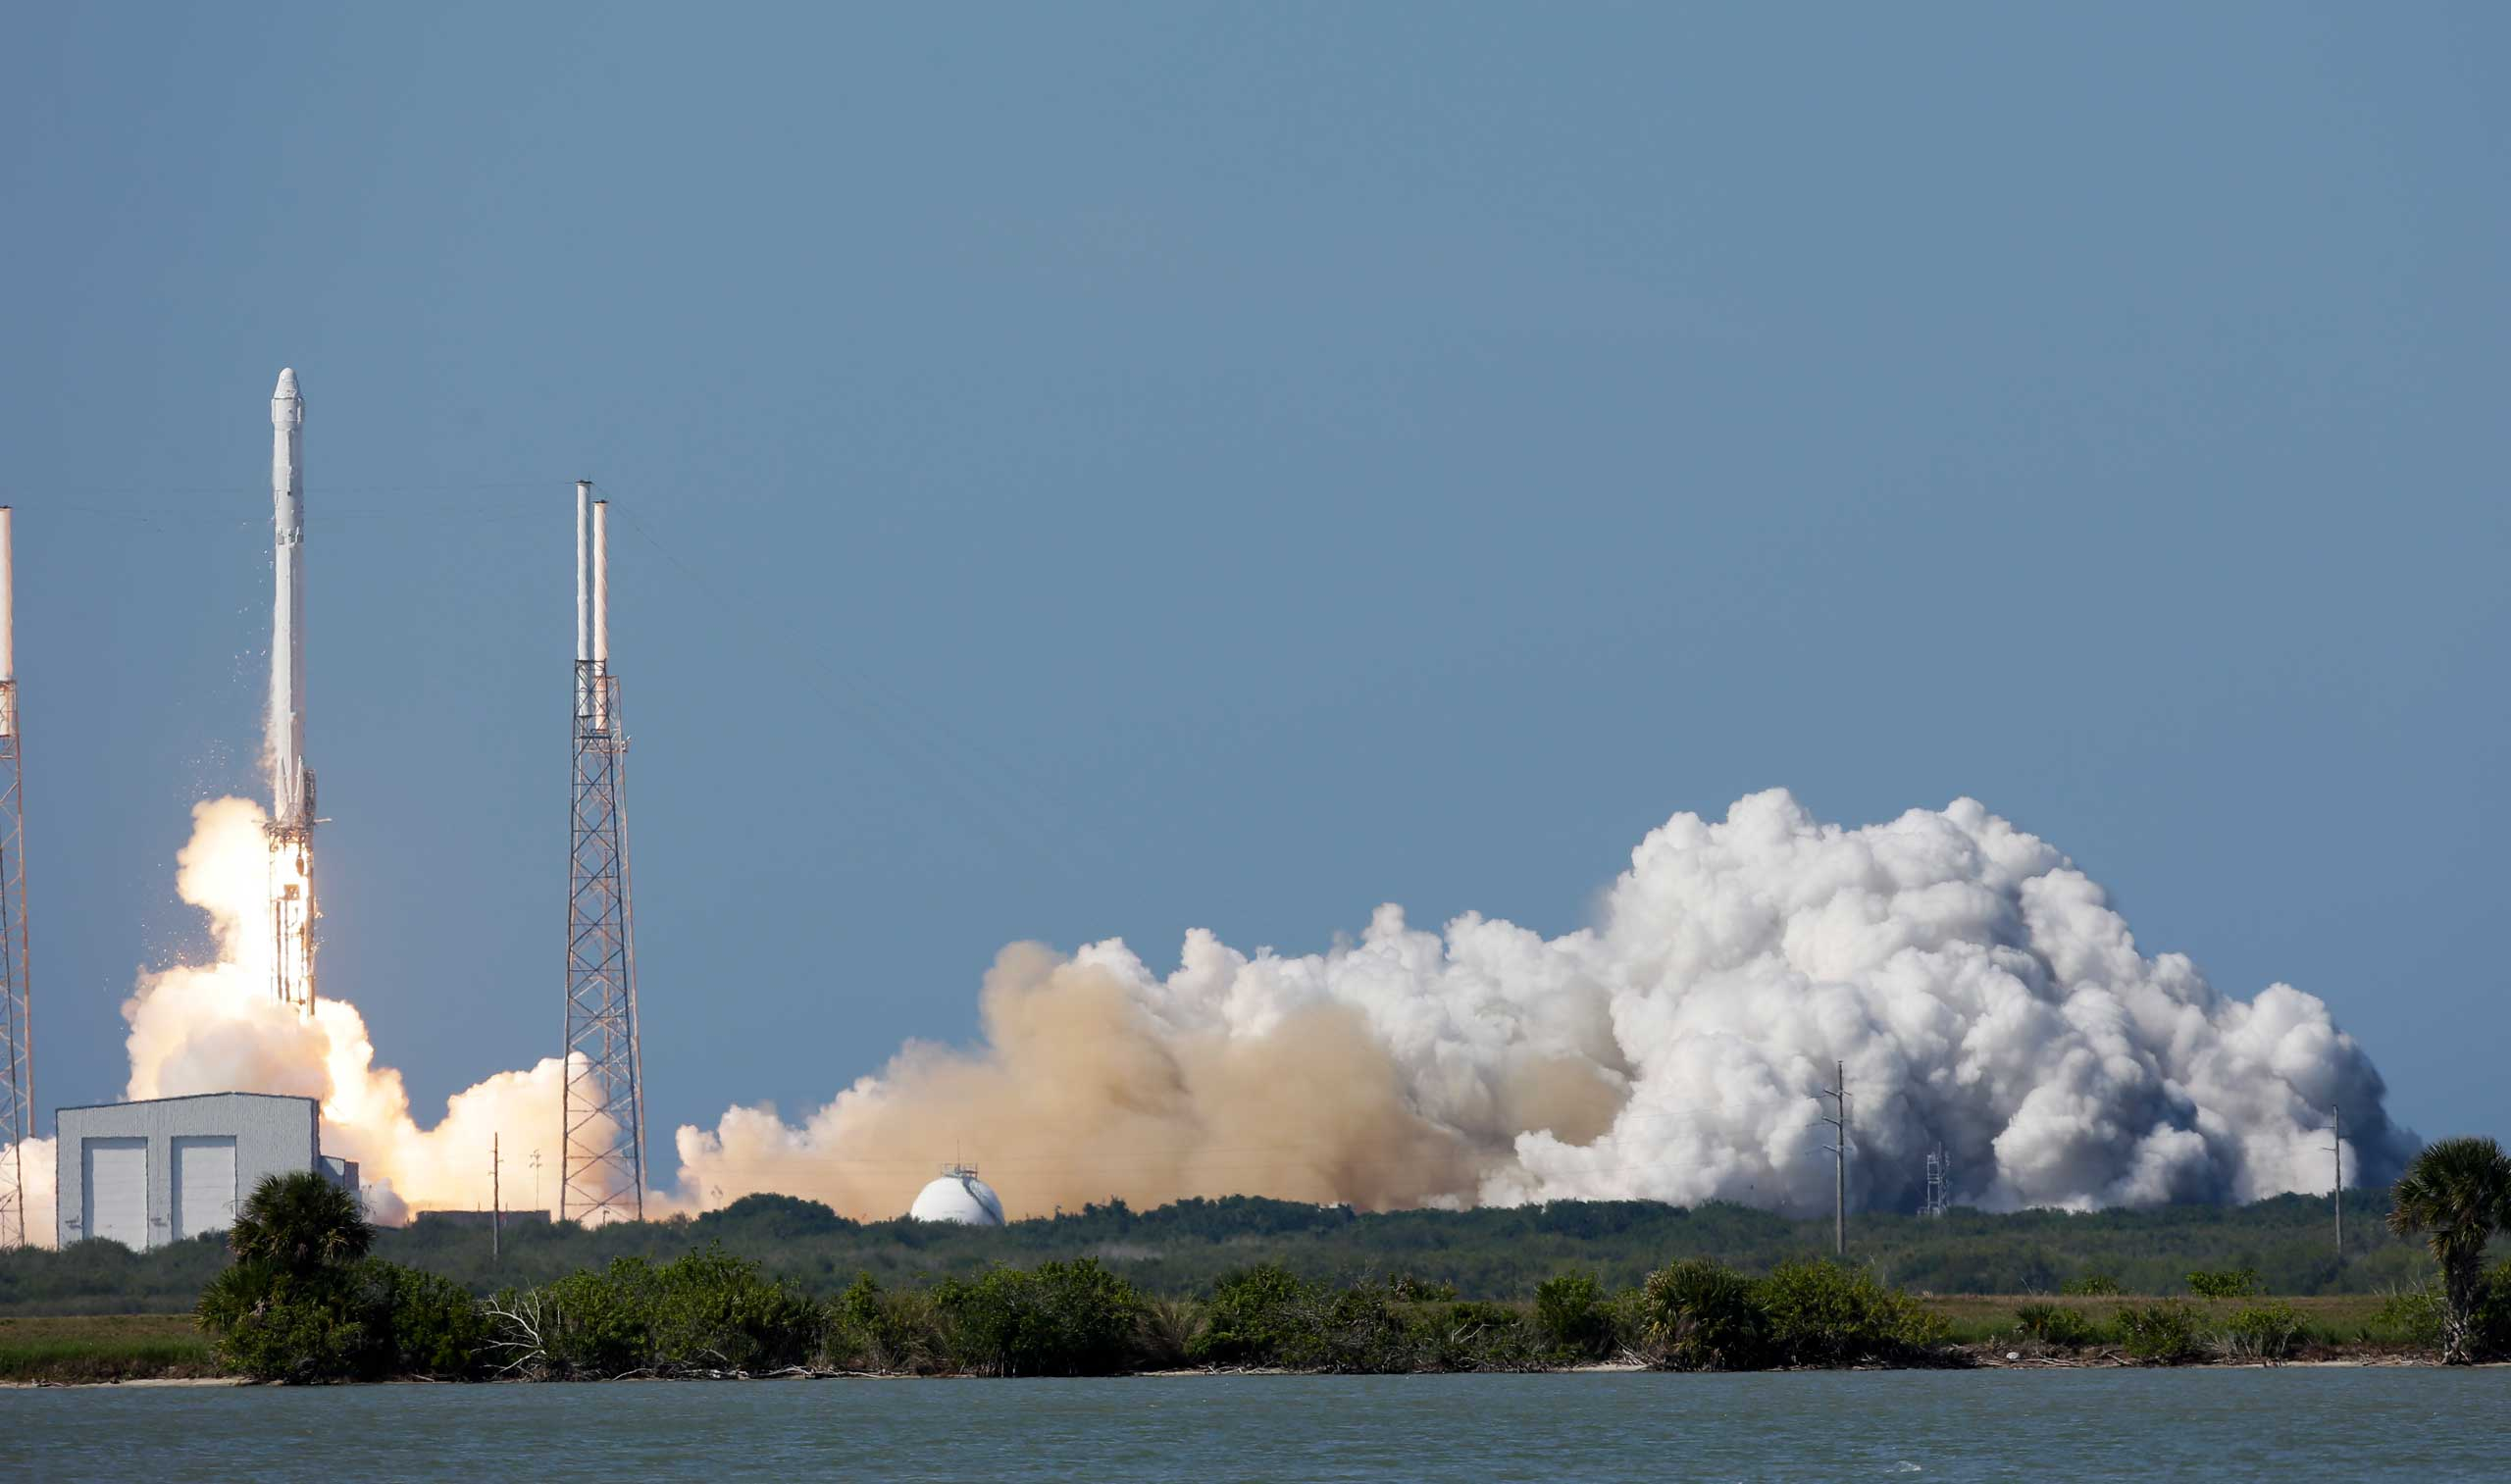 The Falcon 9 SpaceX rocket lifts off from launch at the Cape Canaveral Air Force Station in Cape Canaveral, Fla., on Apr. 14, 2015.